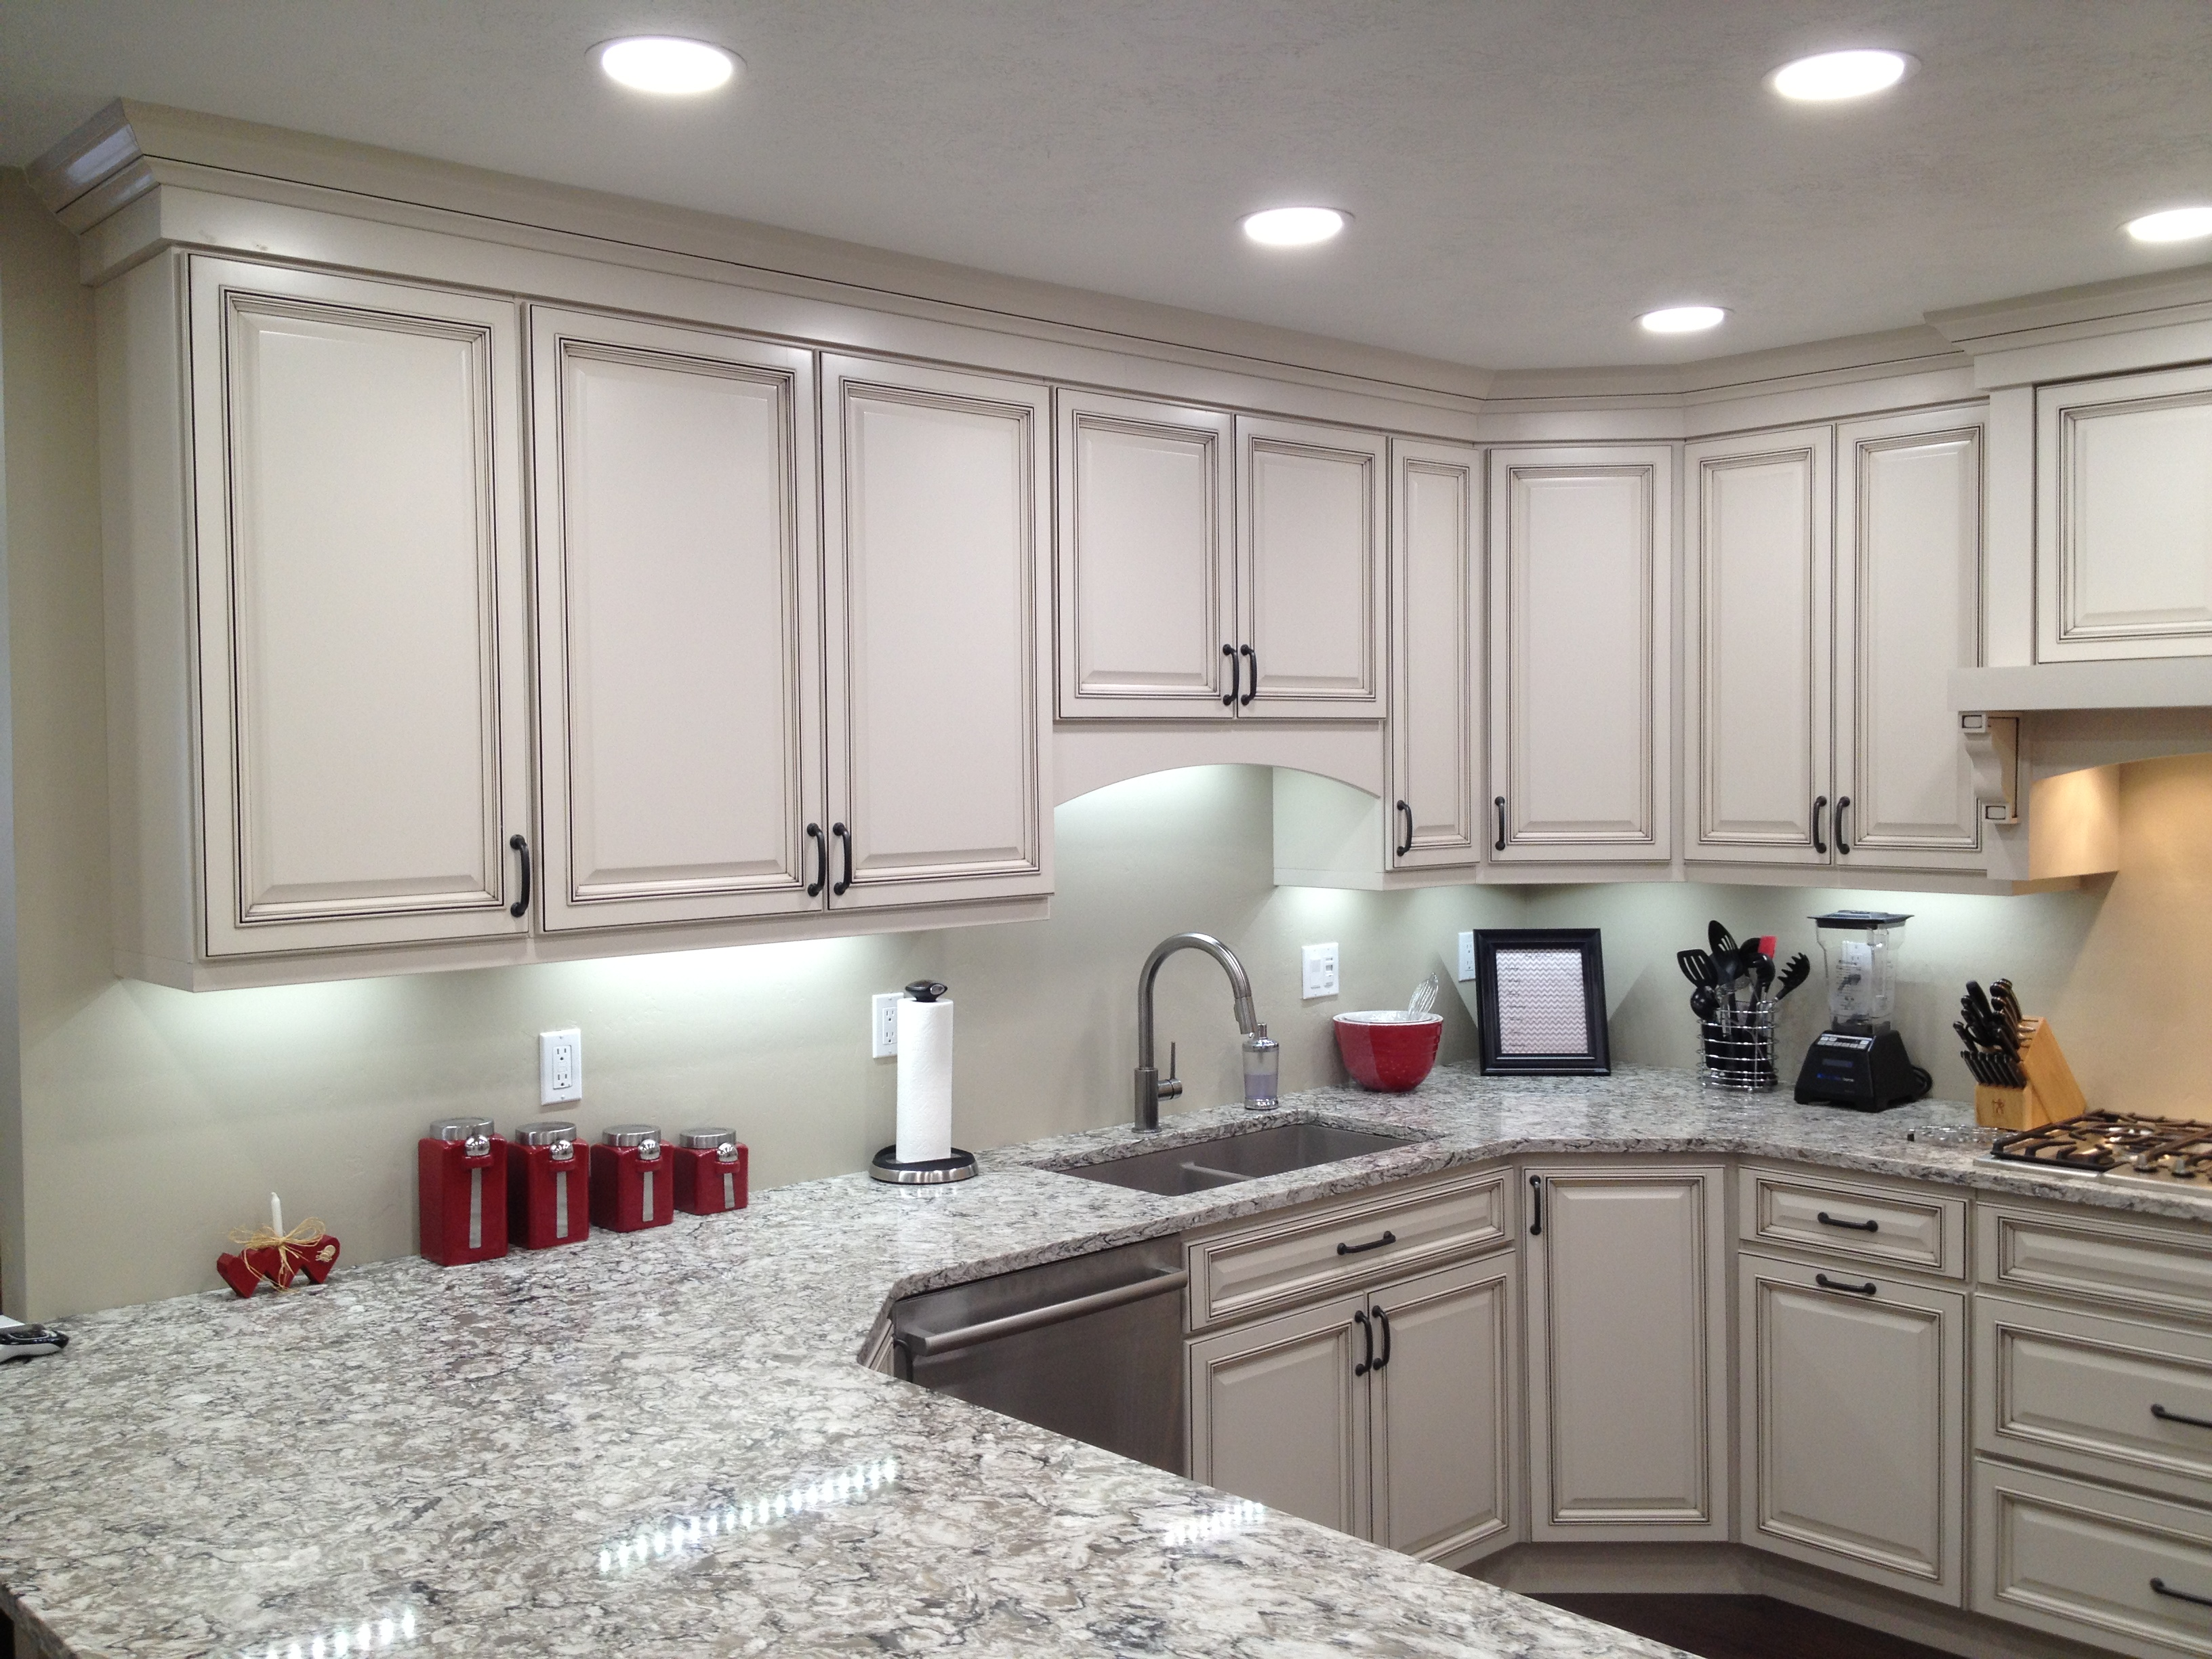 Uncategorized Battery Operated Under Cabinet Lighting Kitchen wireless led under cabinet lighting illumra pax lighting